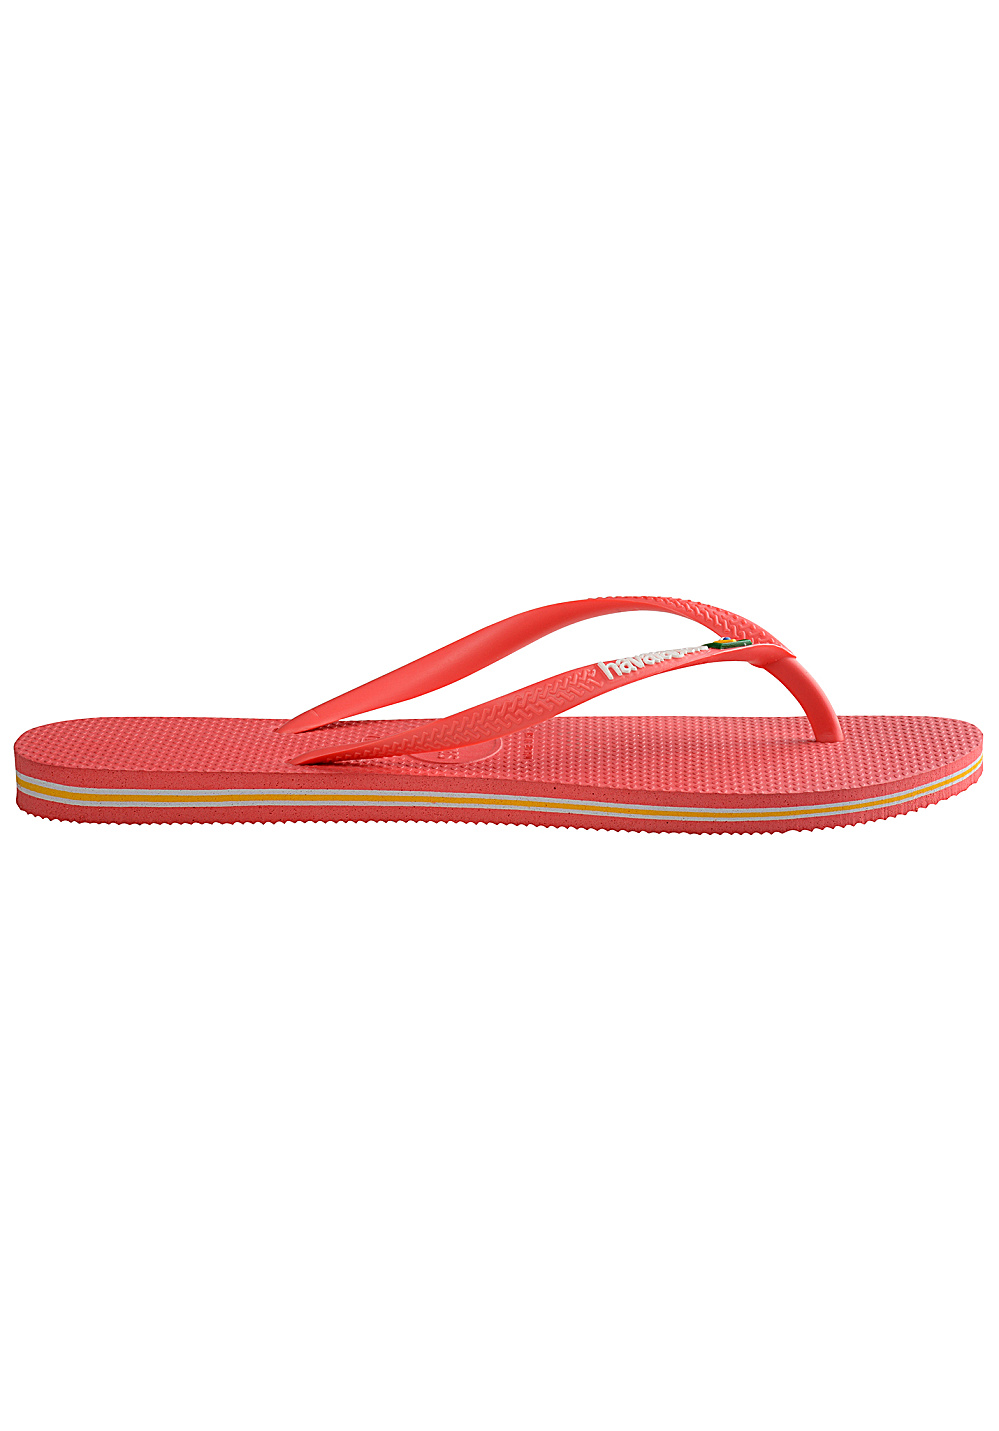 1be38b11b90f7 ... HAVAIANAS Slim Brasil Logo - Sandals for Women - Red. Back to Overview.  1  2. Previous